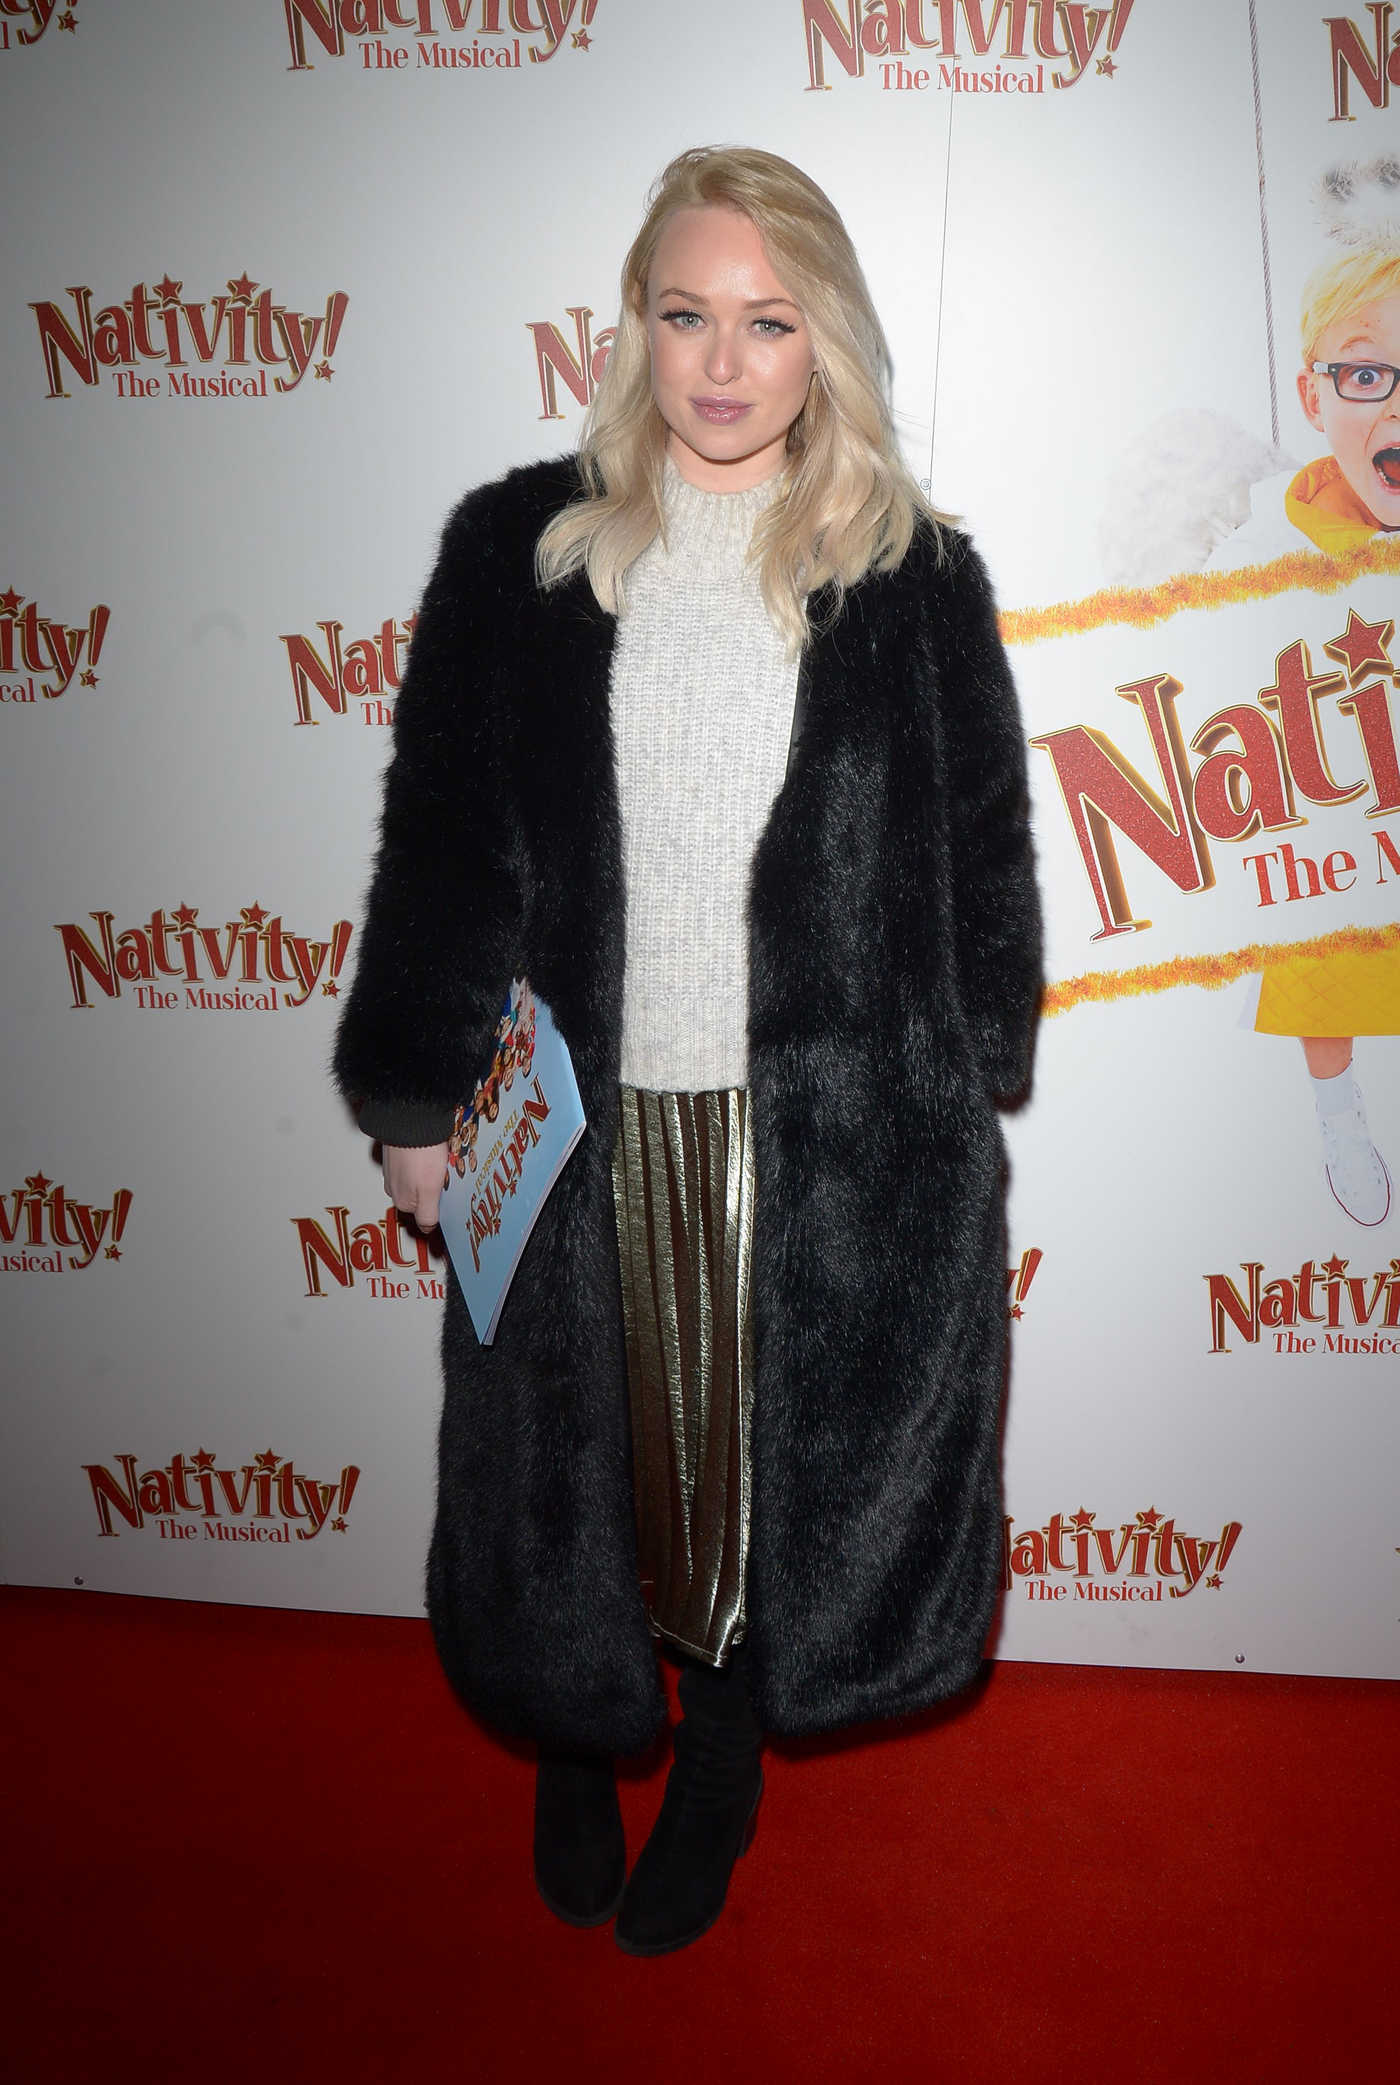 Jorgie Porter Attends Nativity! The Musical Press Night in London 12/20/2018